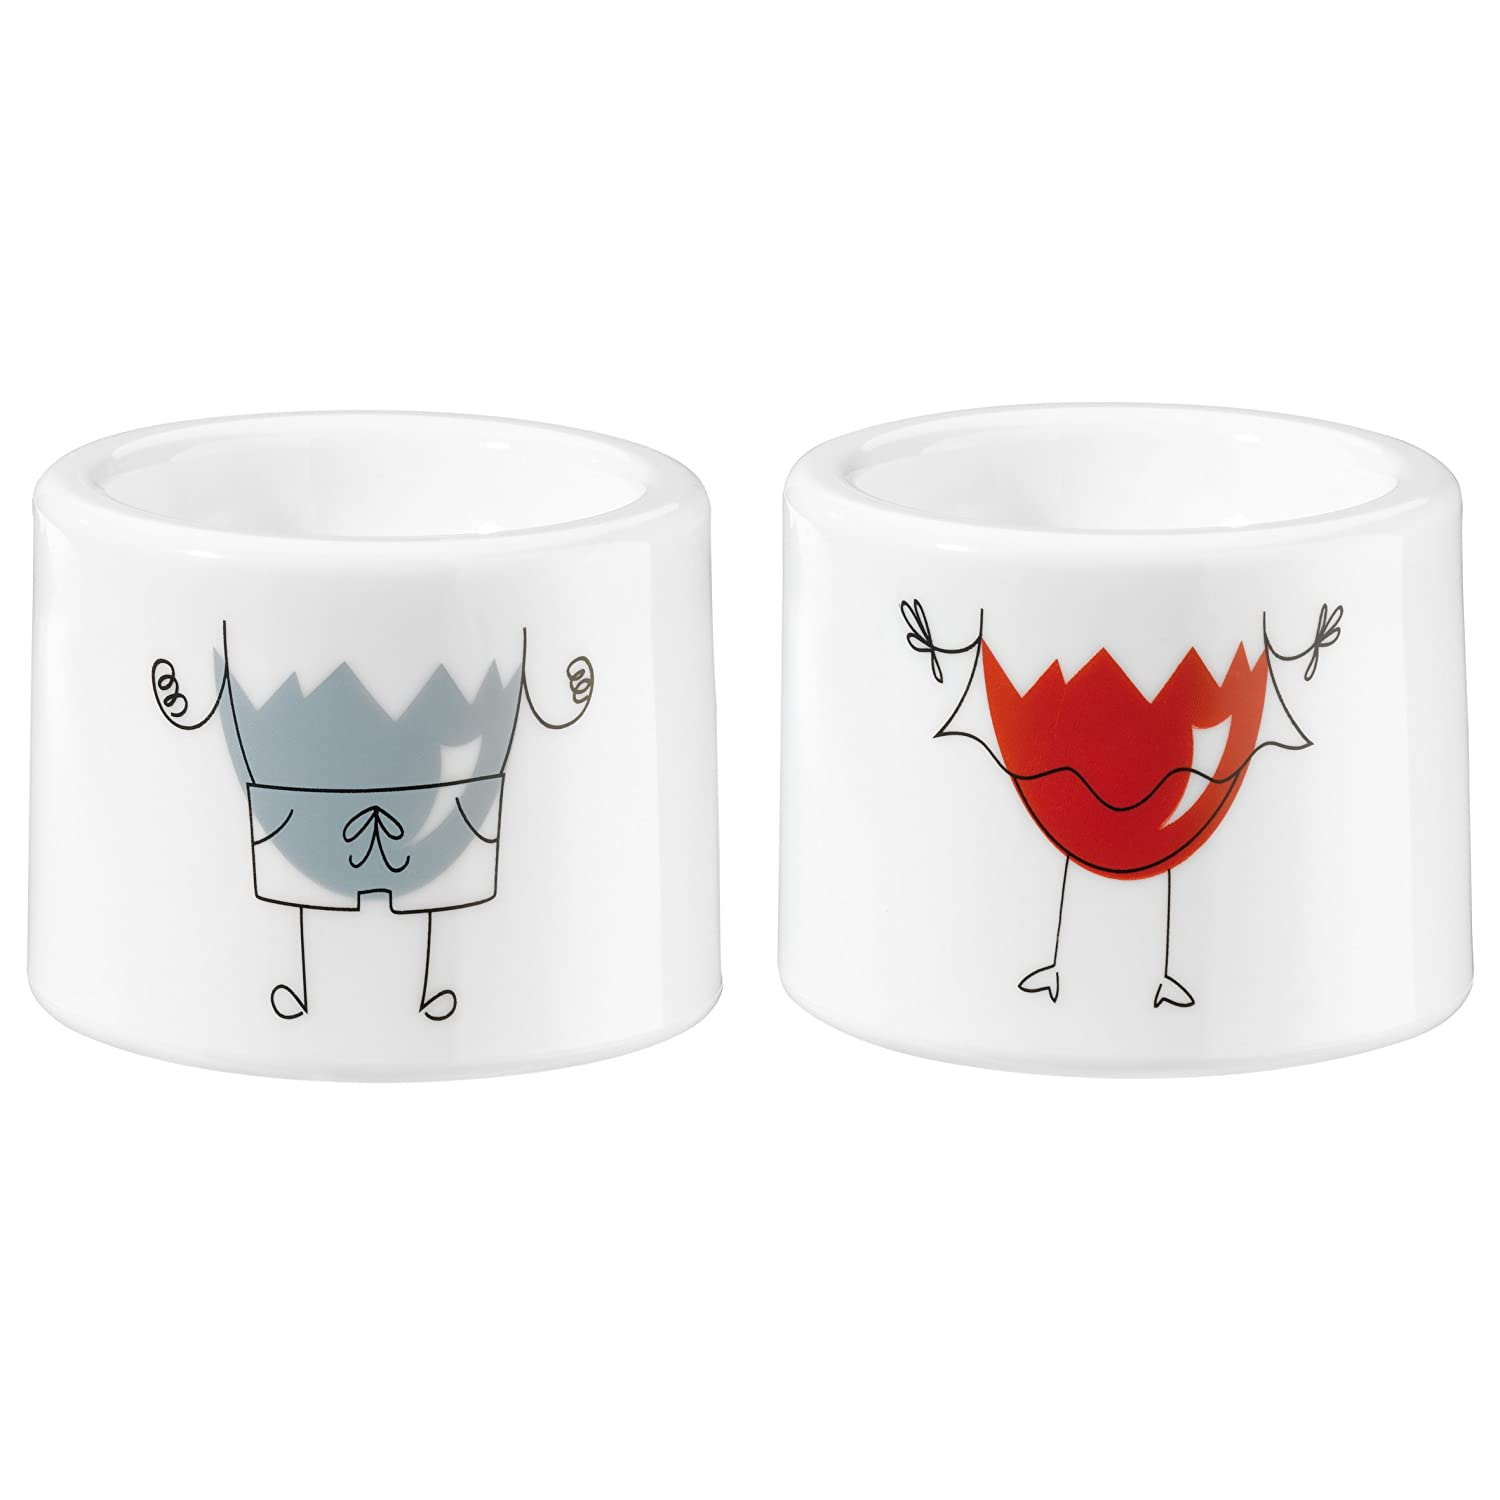 koziol egg cup I-Cup Mr & Mrs, set of 2, thermoplastic, white, 5.4 x ...